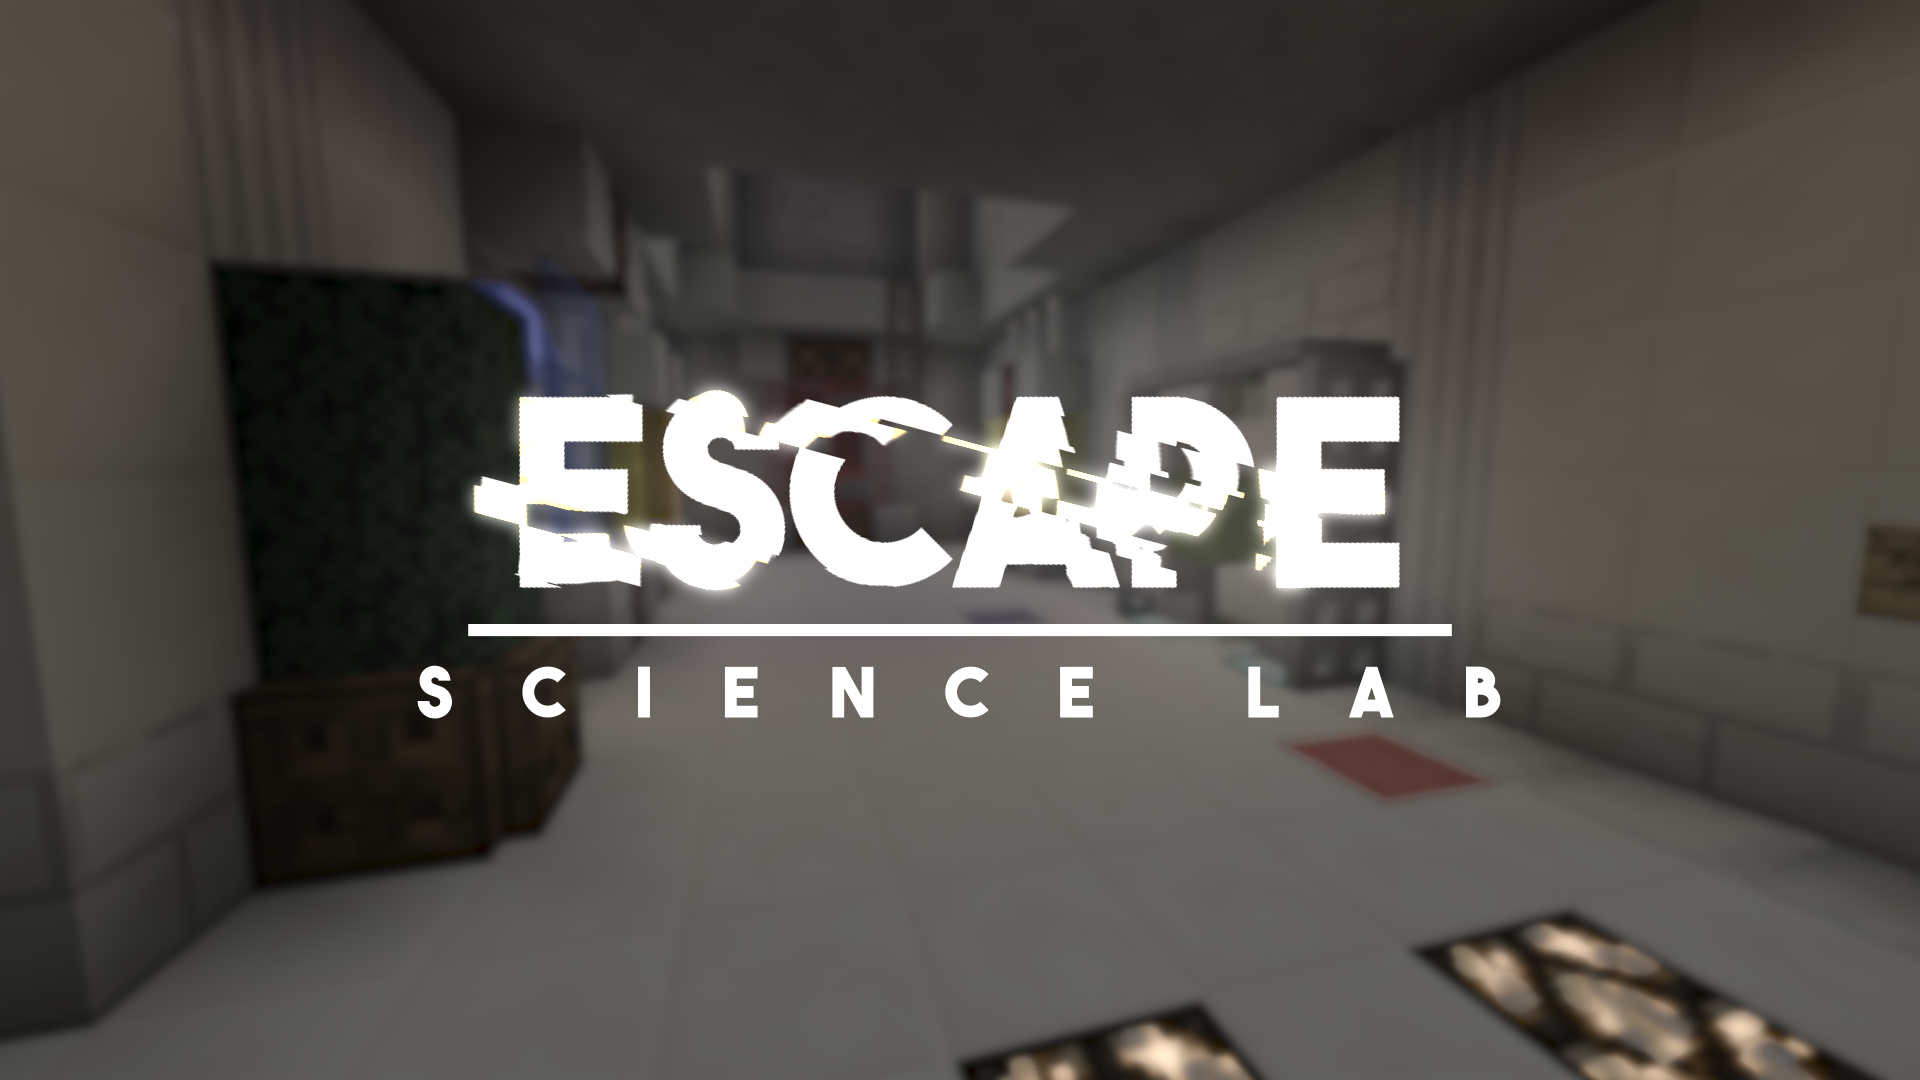 Escape: Lab